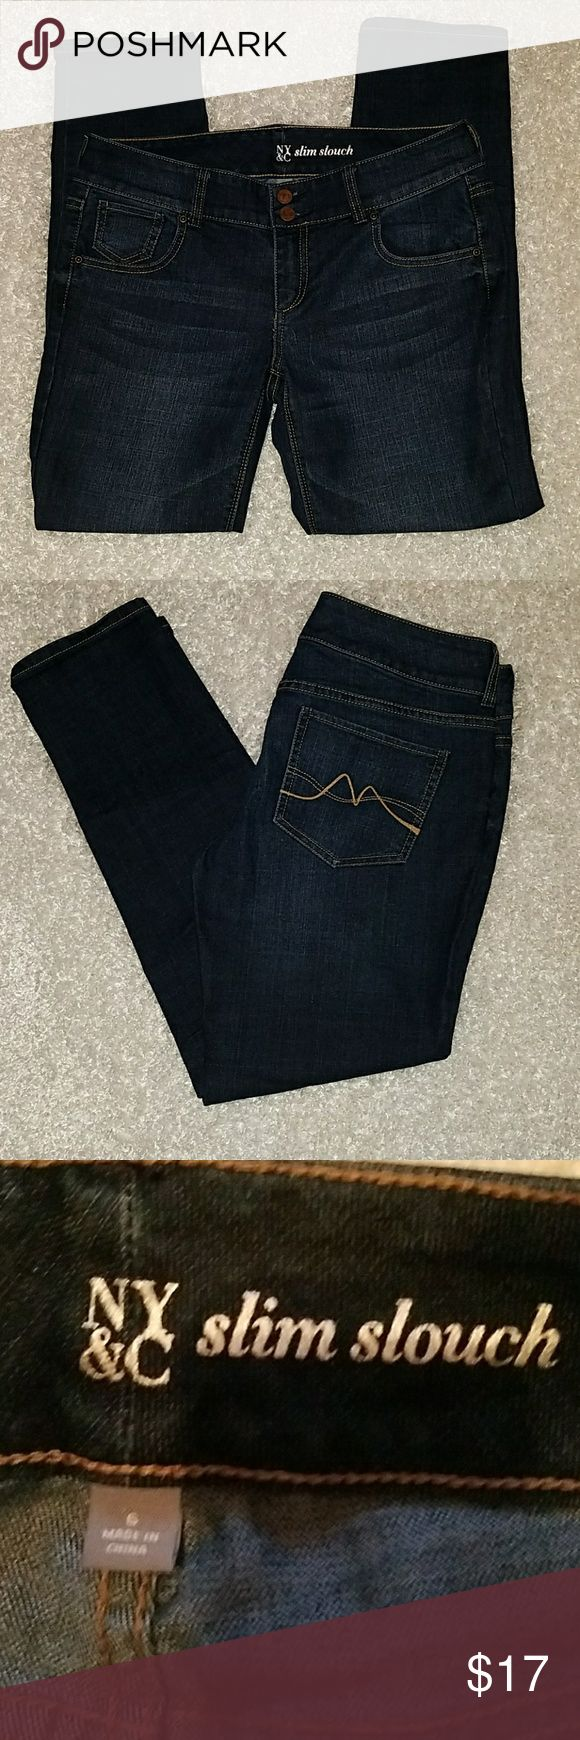 "NY&C Size 6 slim slouch jeans Excellent used condition.                                        Waist - 27""   Inseam - 28""                                        measurements taken while laying flat and are appropriate. NY&C Jeans Skinny"